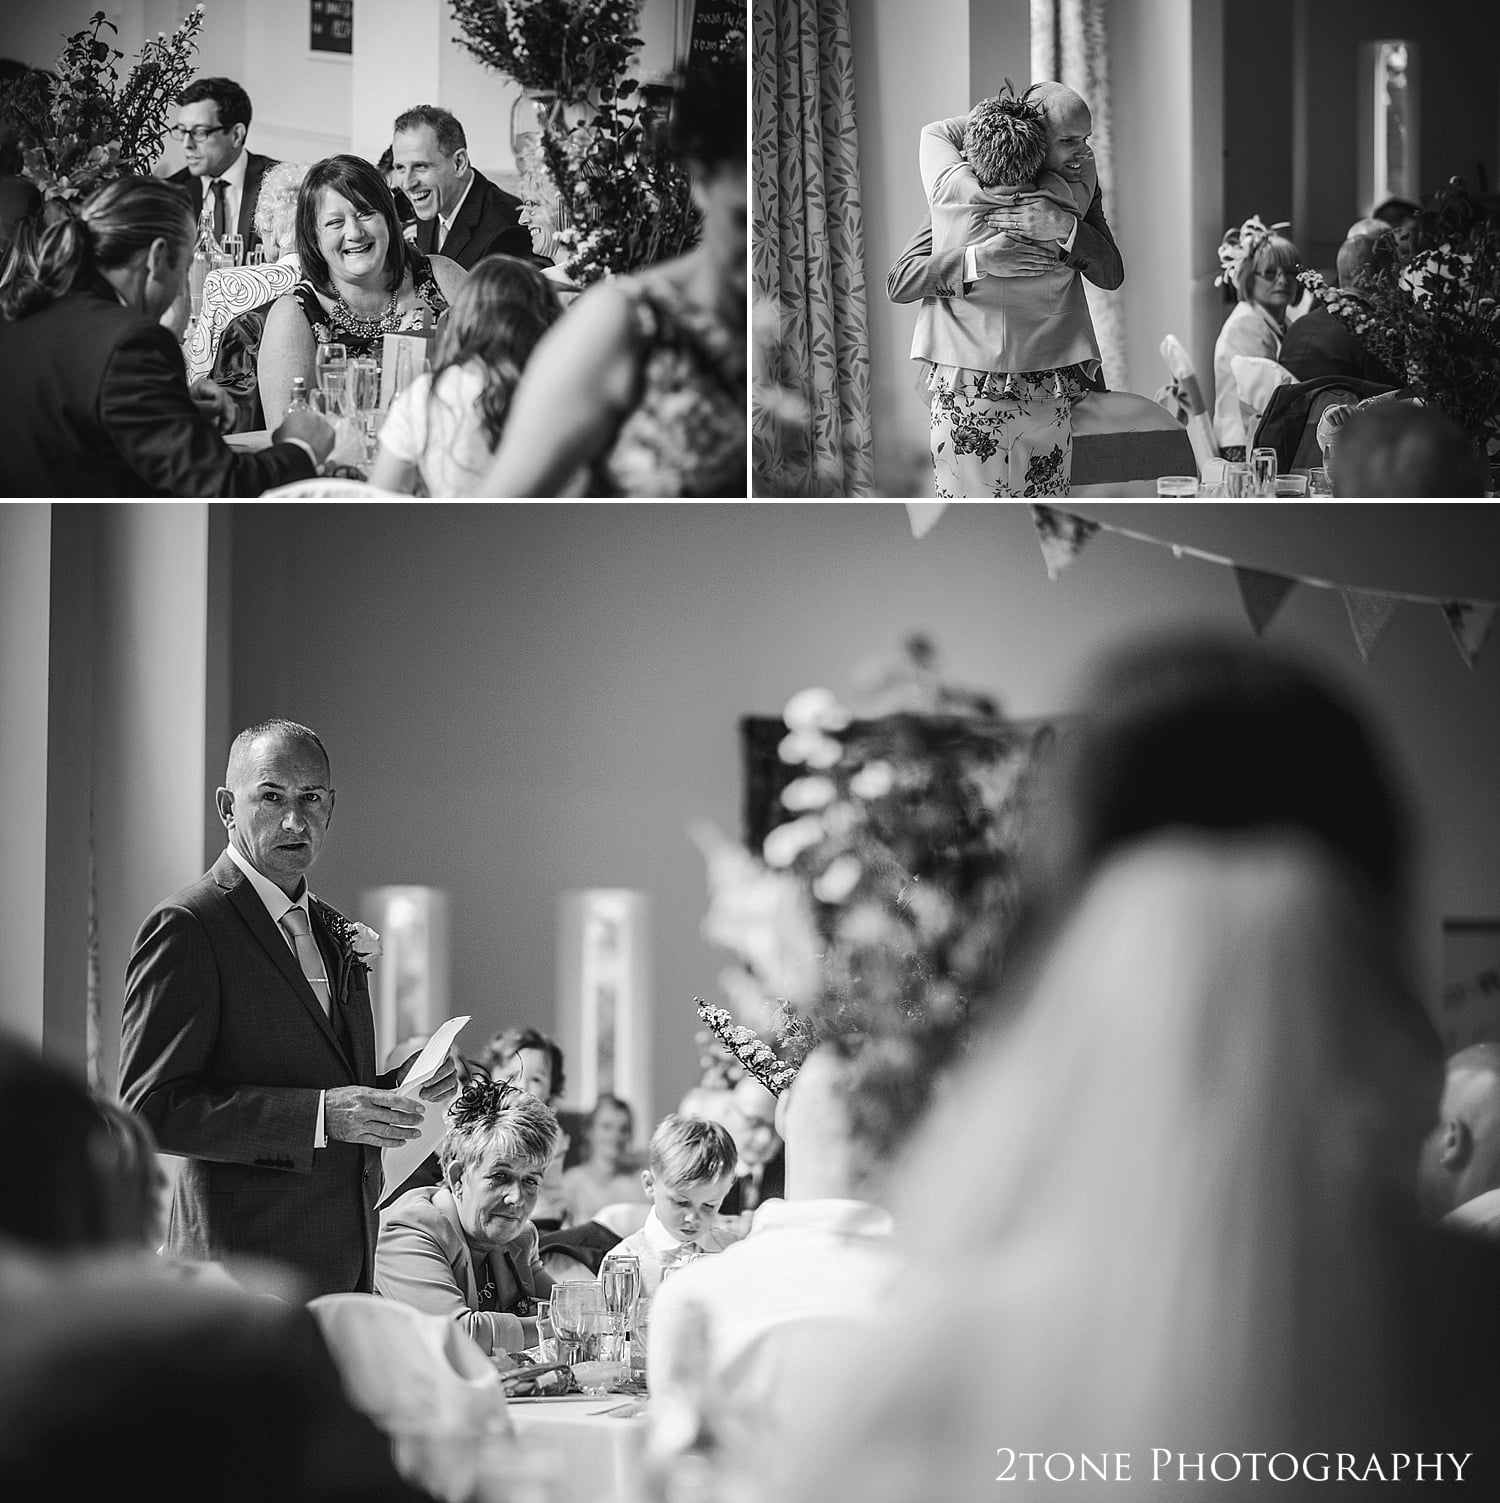 Wedding Speeches.  Village Hall wedding photography by 2tone Photography www.2tonephotograhy.co.uk